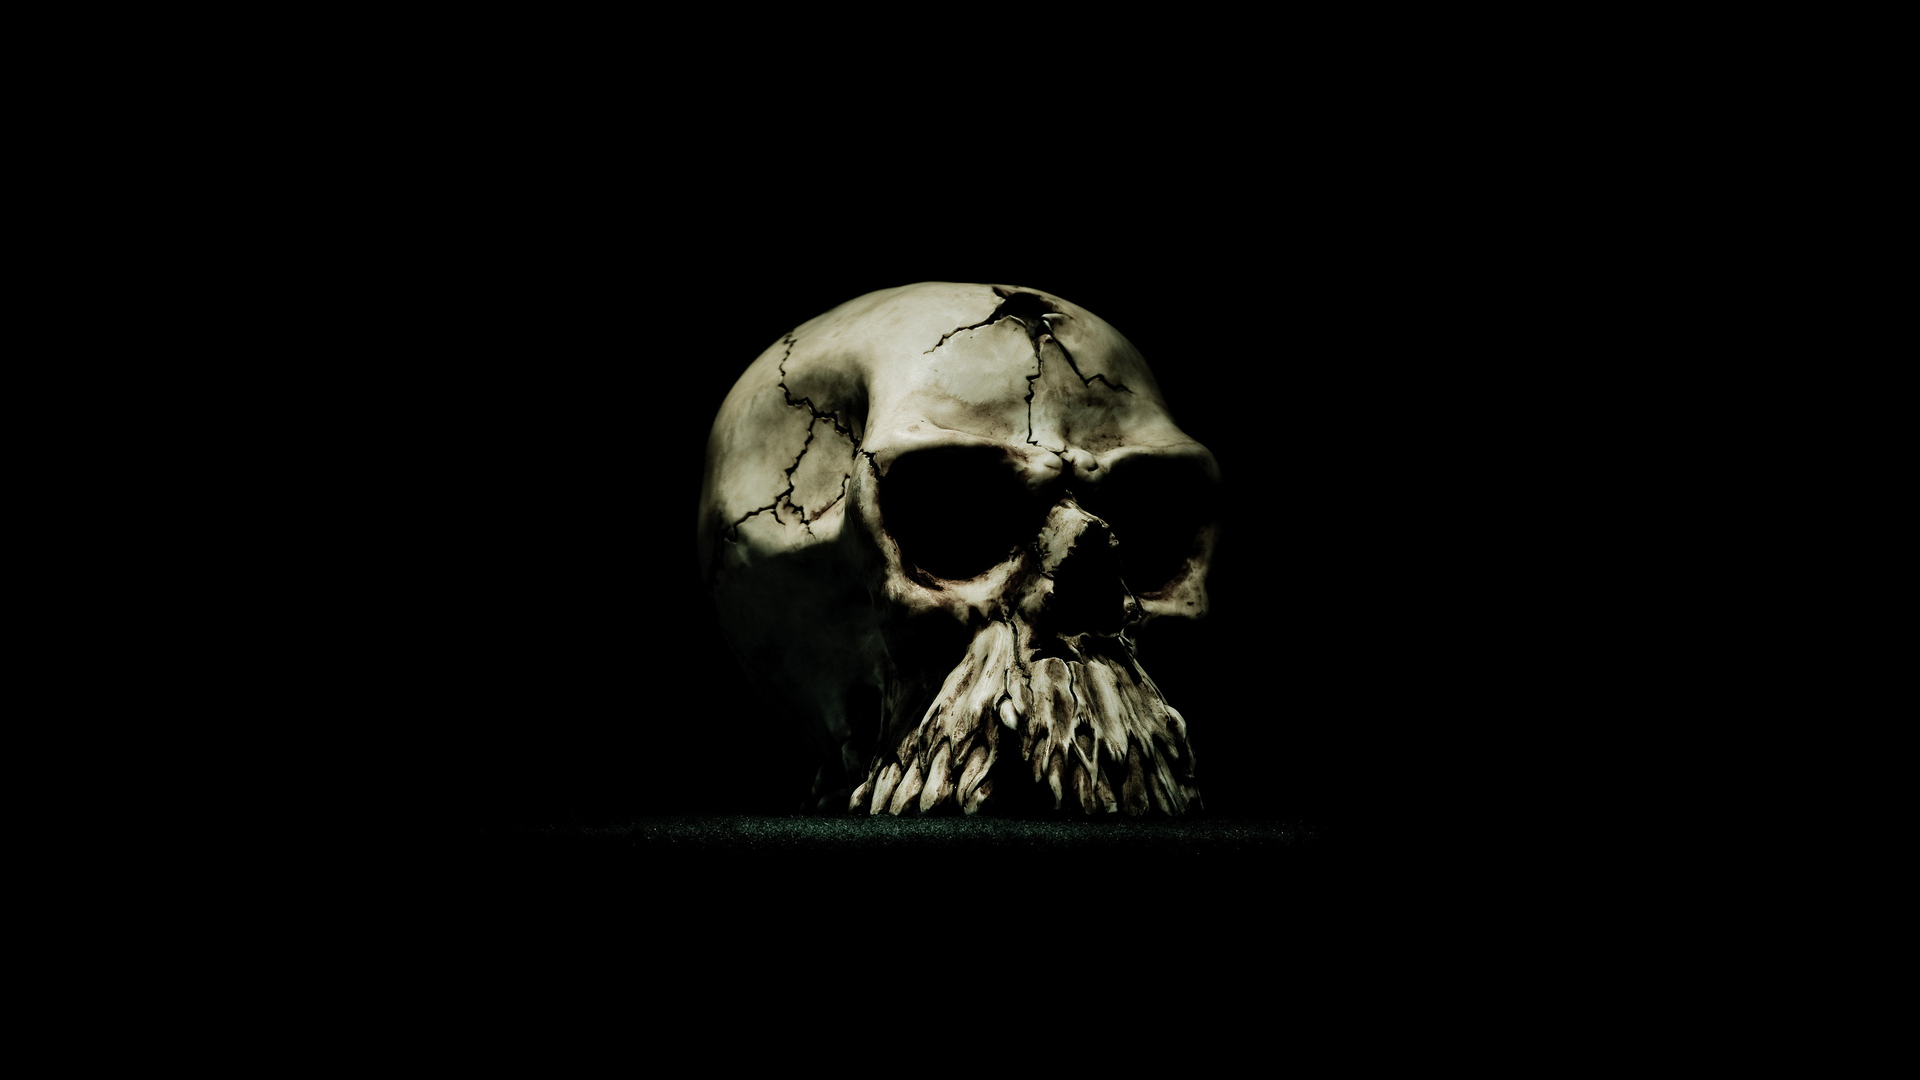 Evil Skull Wallpaper submited images 1920x1080